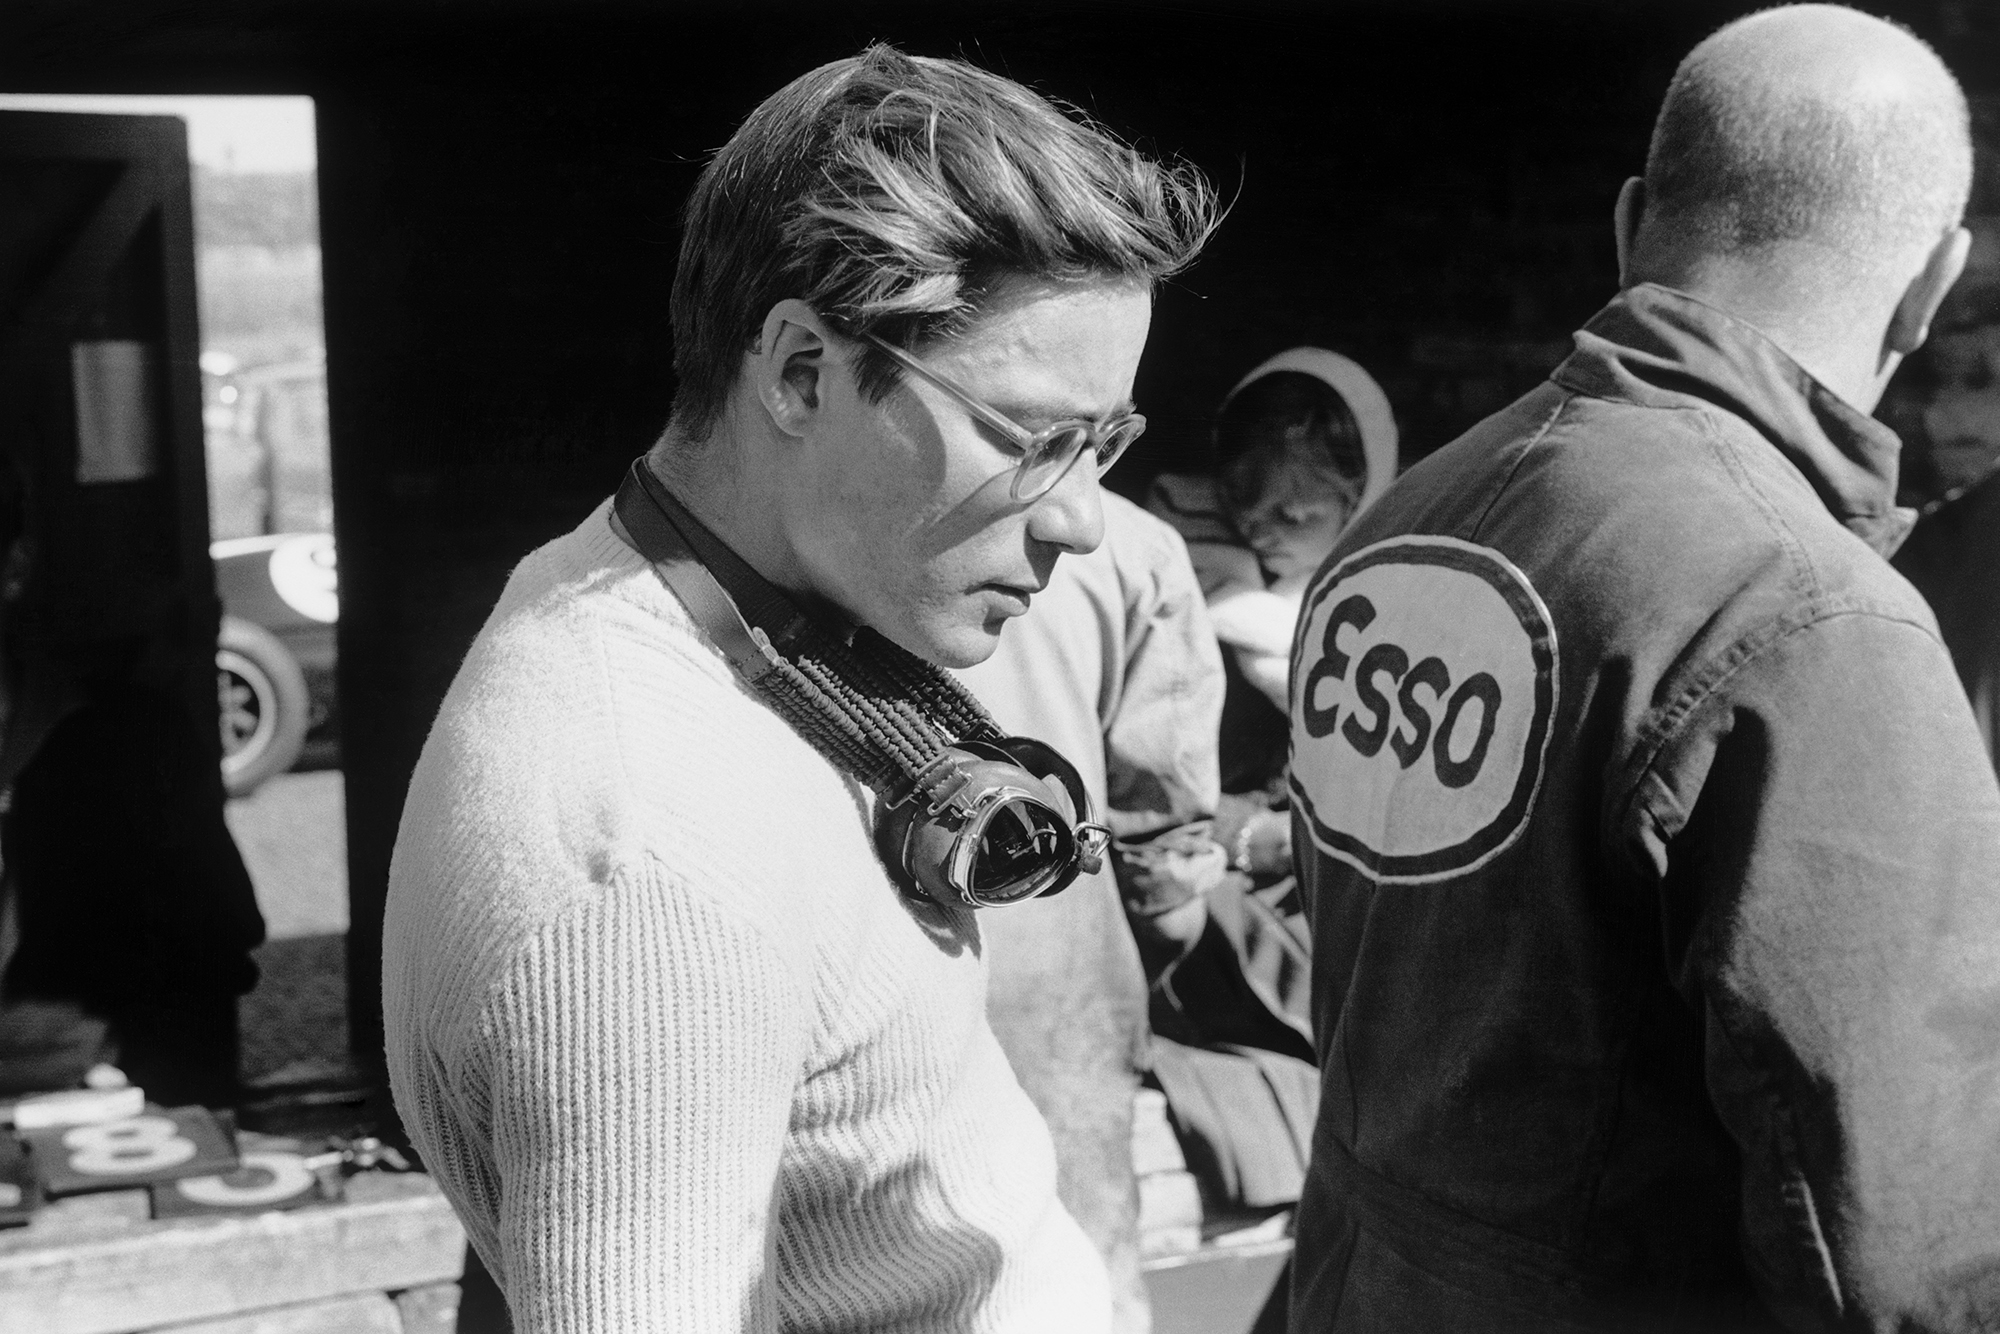 Masten Gregory who finished 3rd in his Cooper T51-Climax.